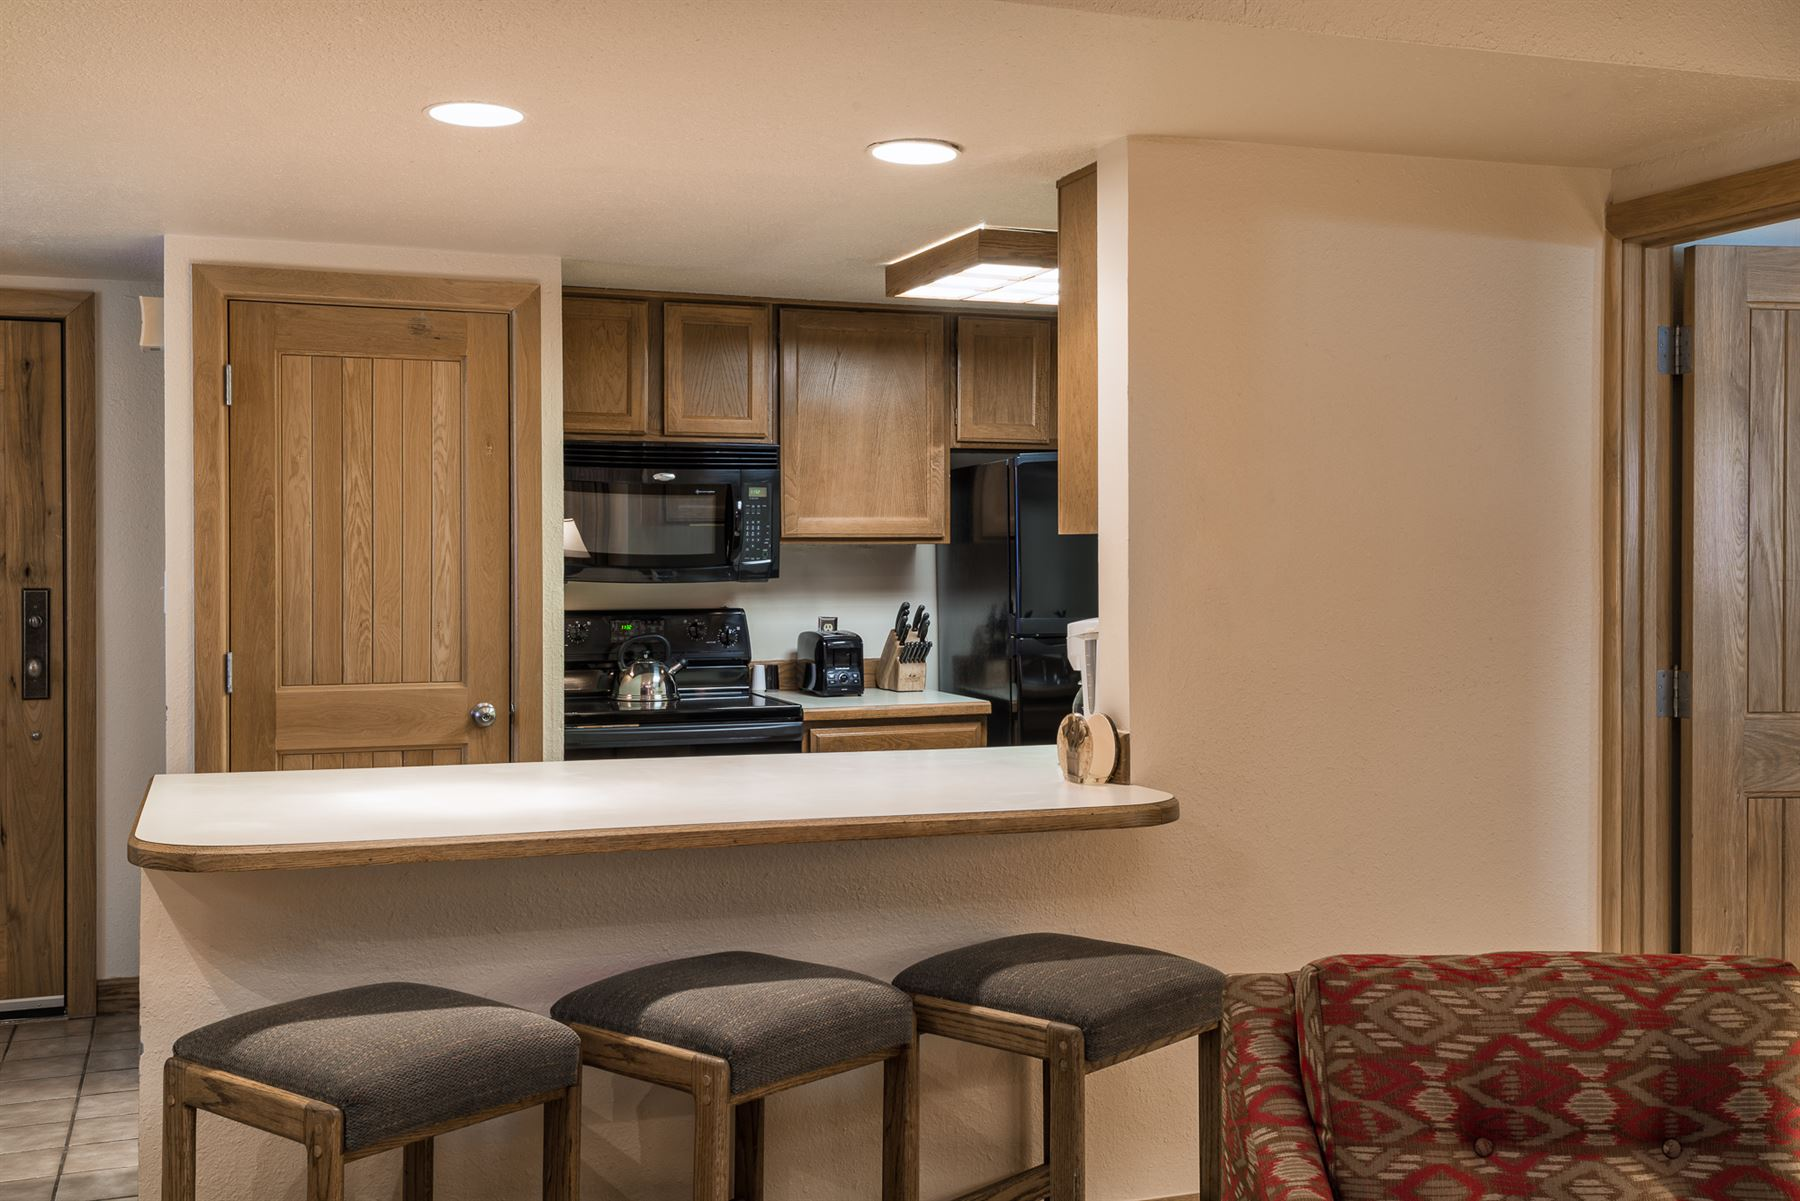 2BGold_View of kitchen with barstools